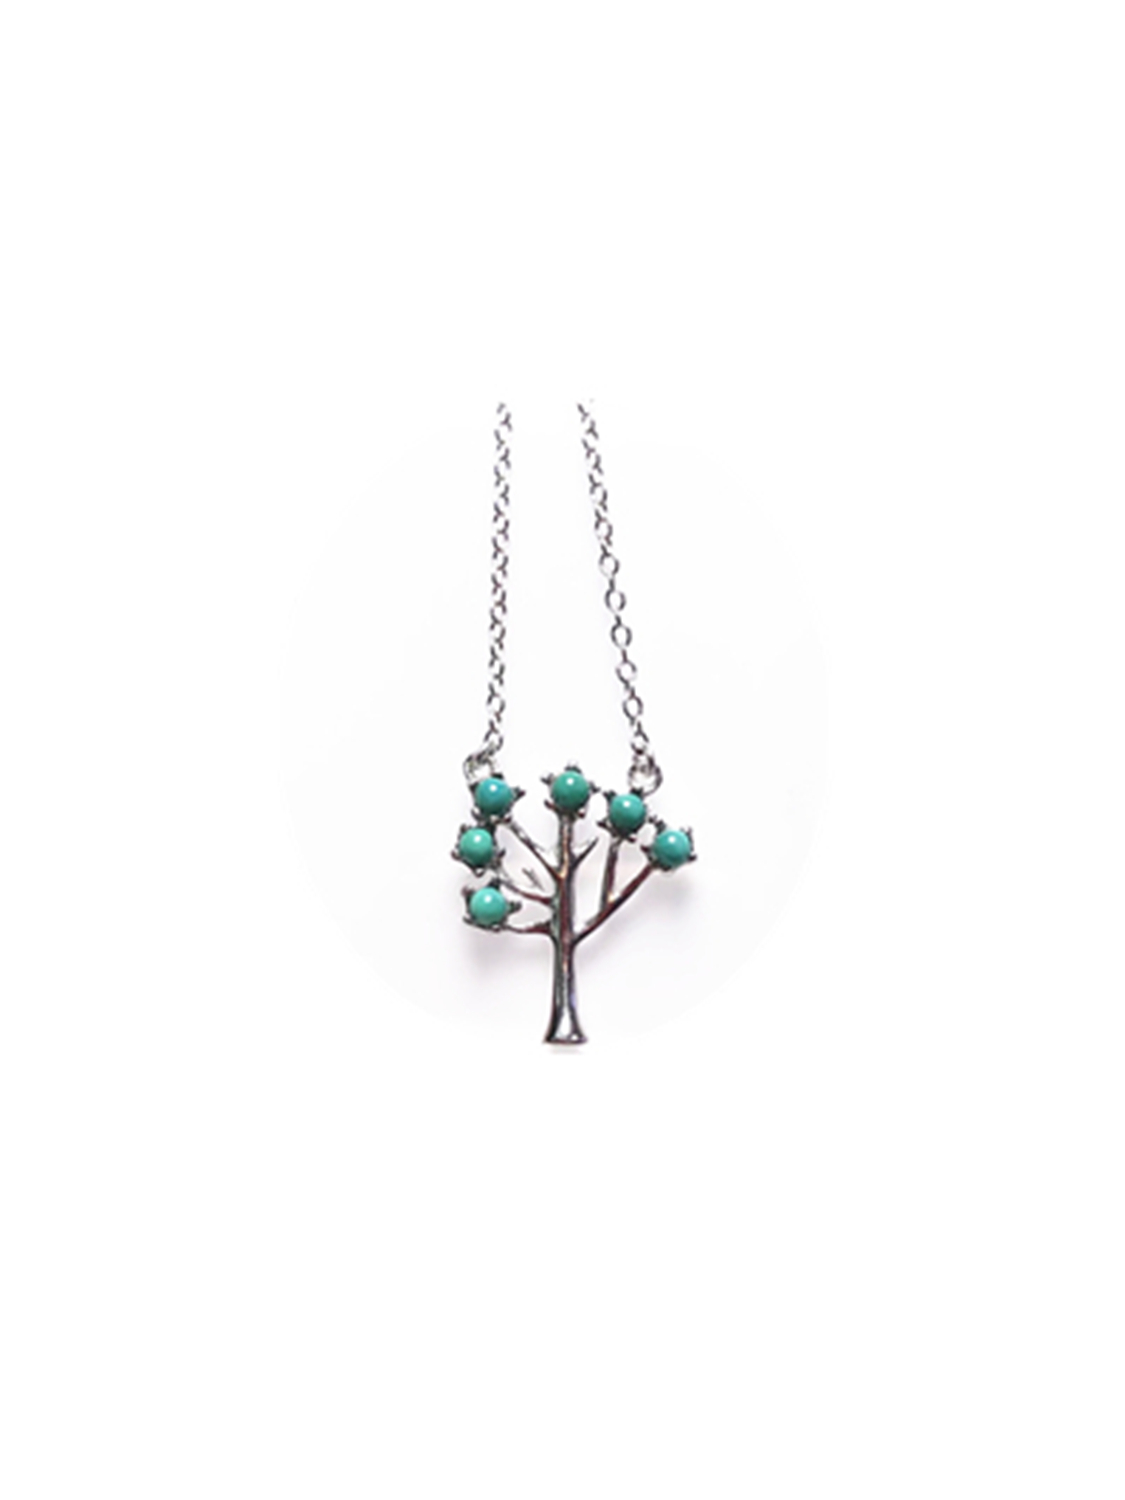 S925 Silver Inlaid Natural Turquoise Pendant Necklace тюбинг snowshow элит 120cm turquoise silver